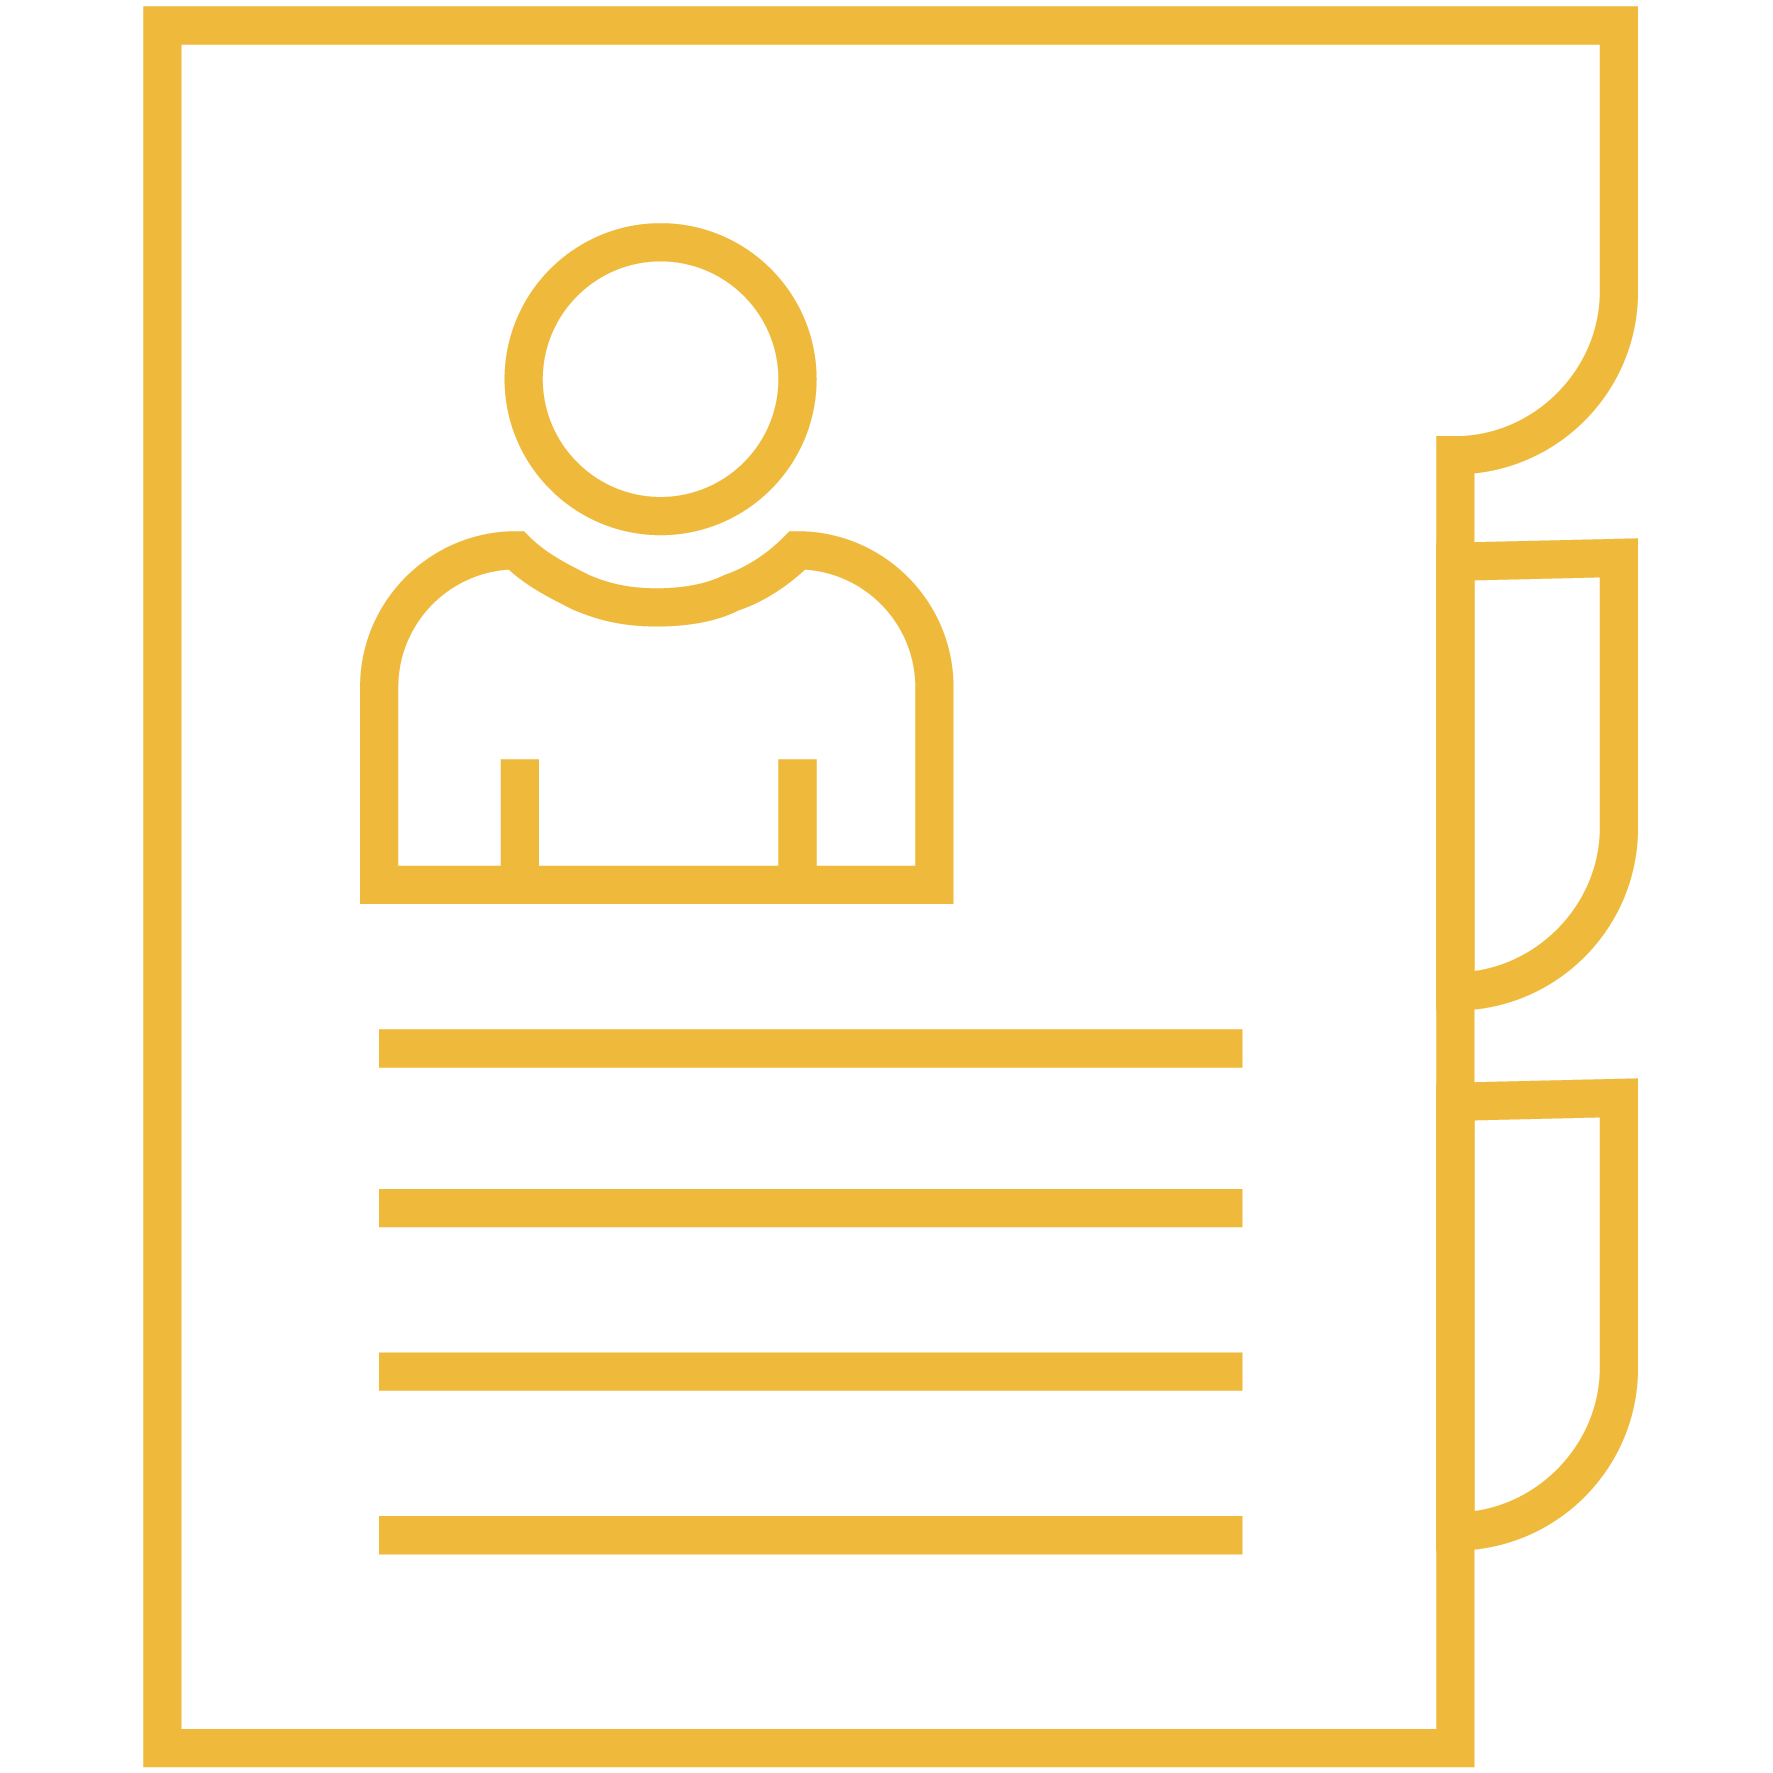 Blueprint_icons-10.png